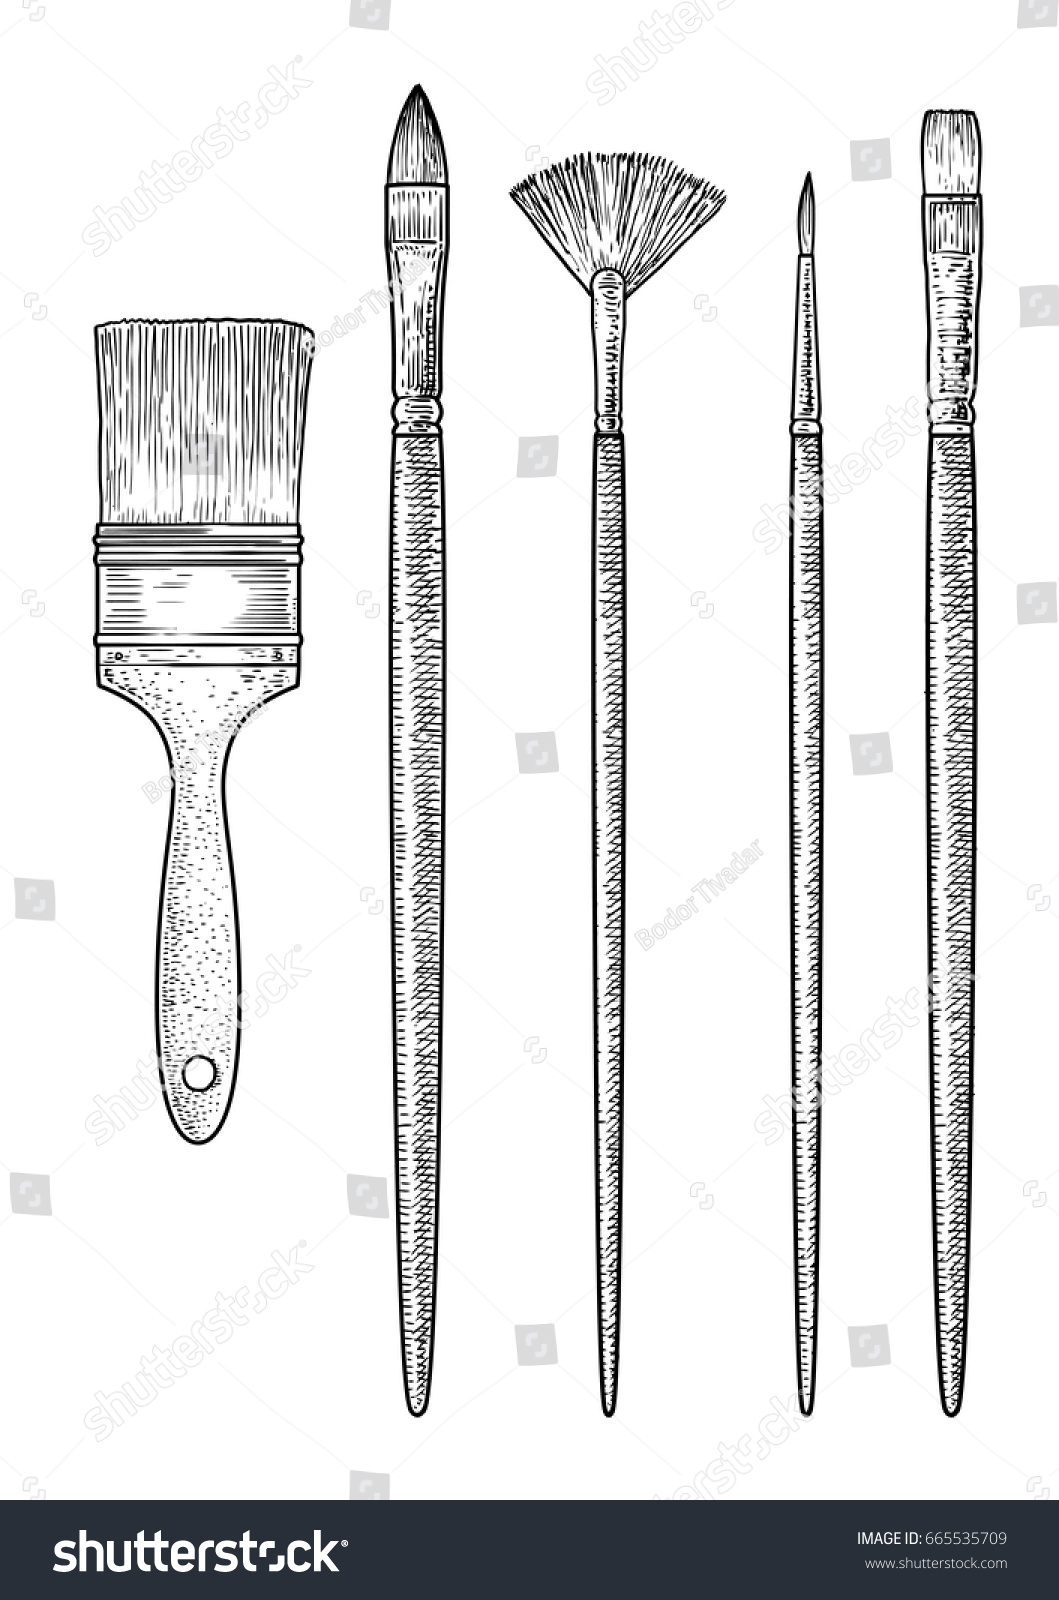 Drawing Straight Lines With Brush In Photo : Brush collection illustration drawing engraving ink stock